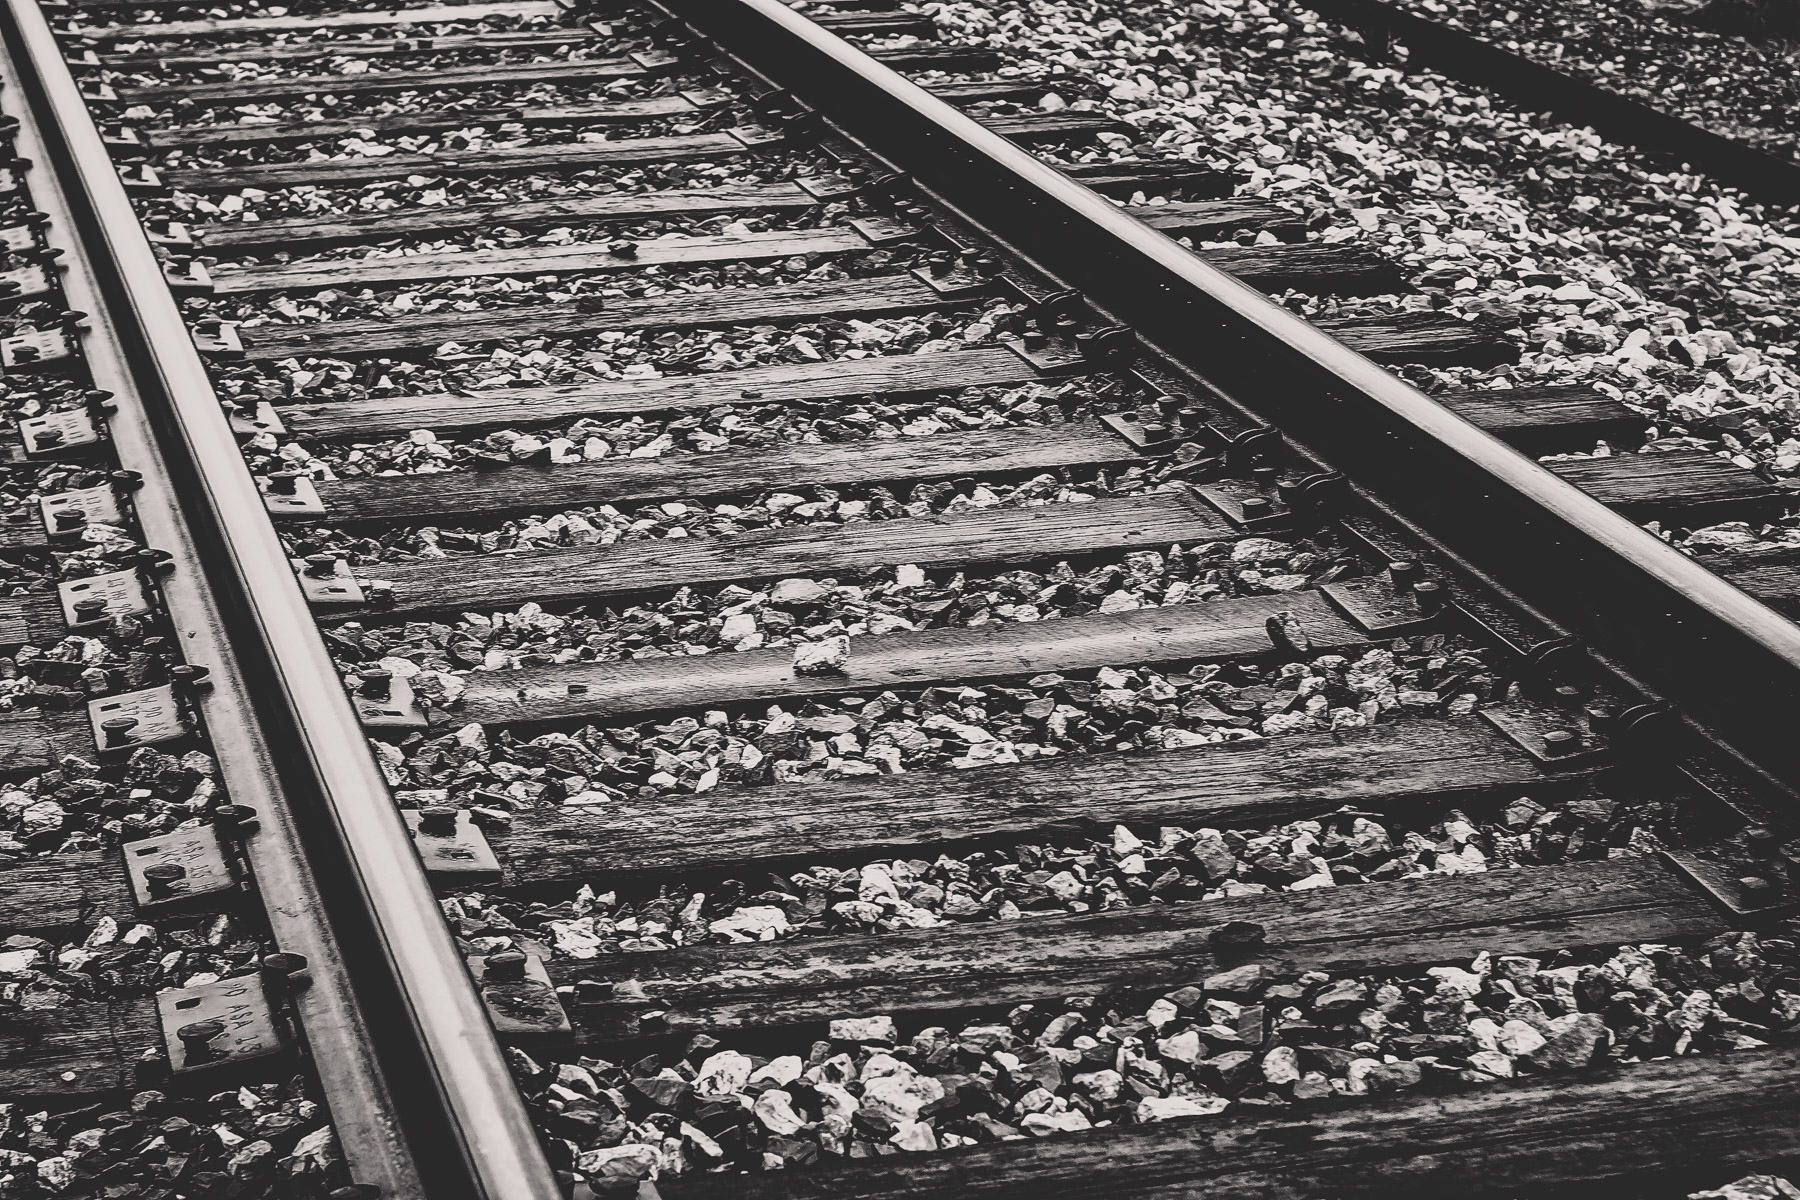 Railroad tracks and their rocky ballast in Jefferson, Texas.